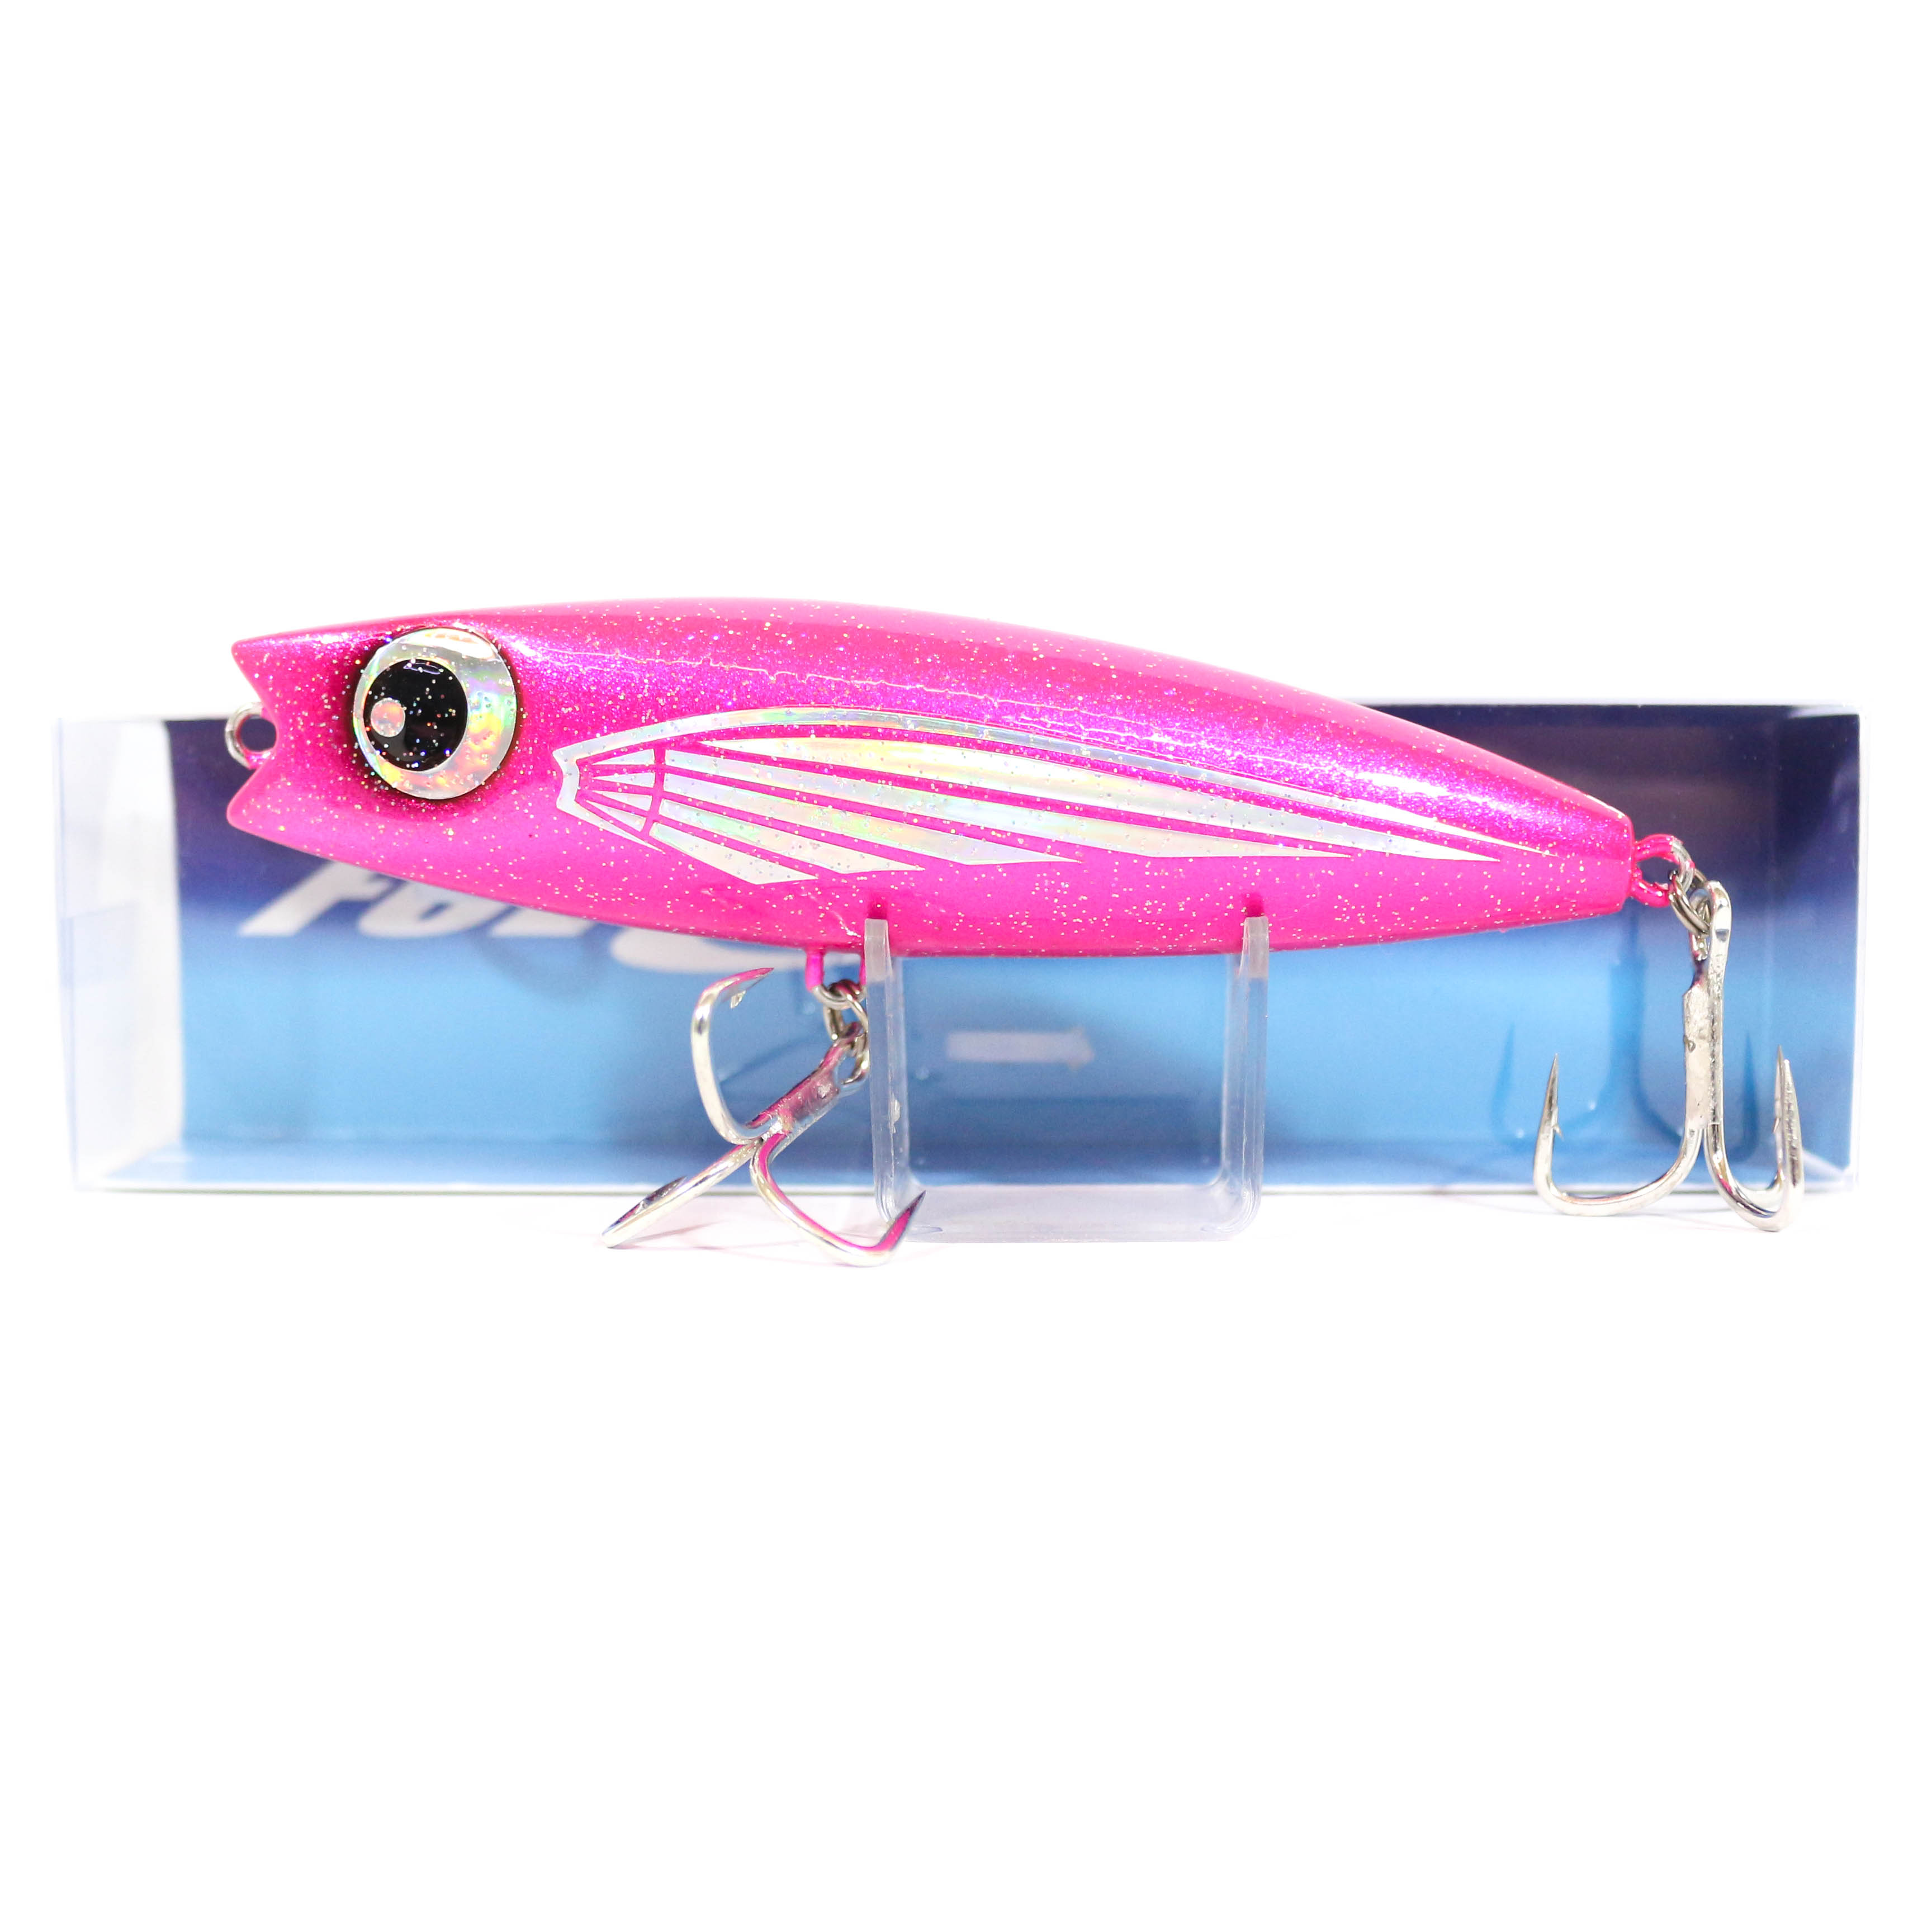 FCL Labo Stick Bait CSP 110 F Floating Lure 30 grams CAP (4144)